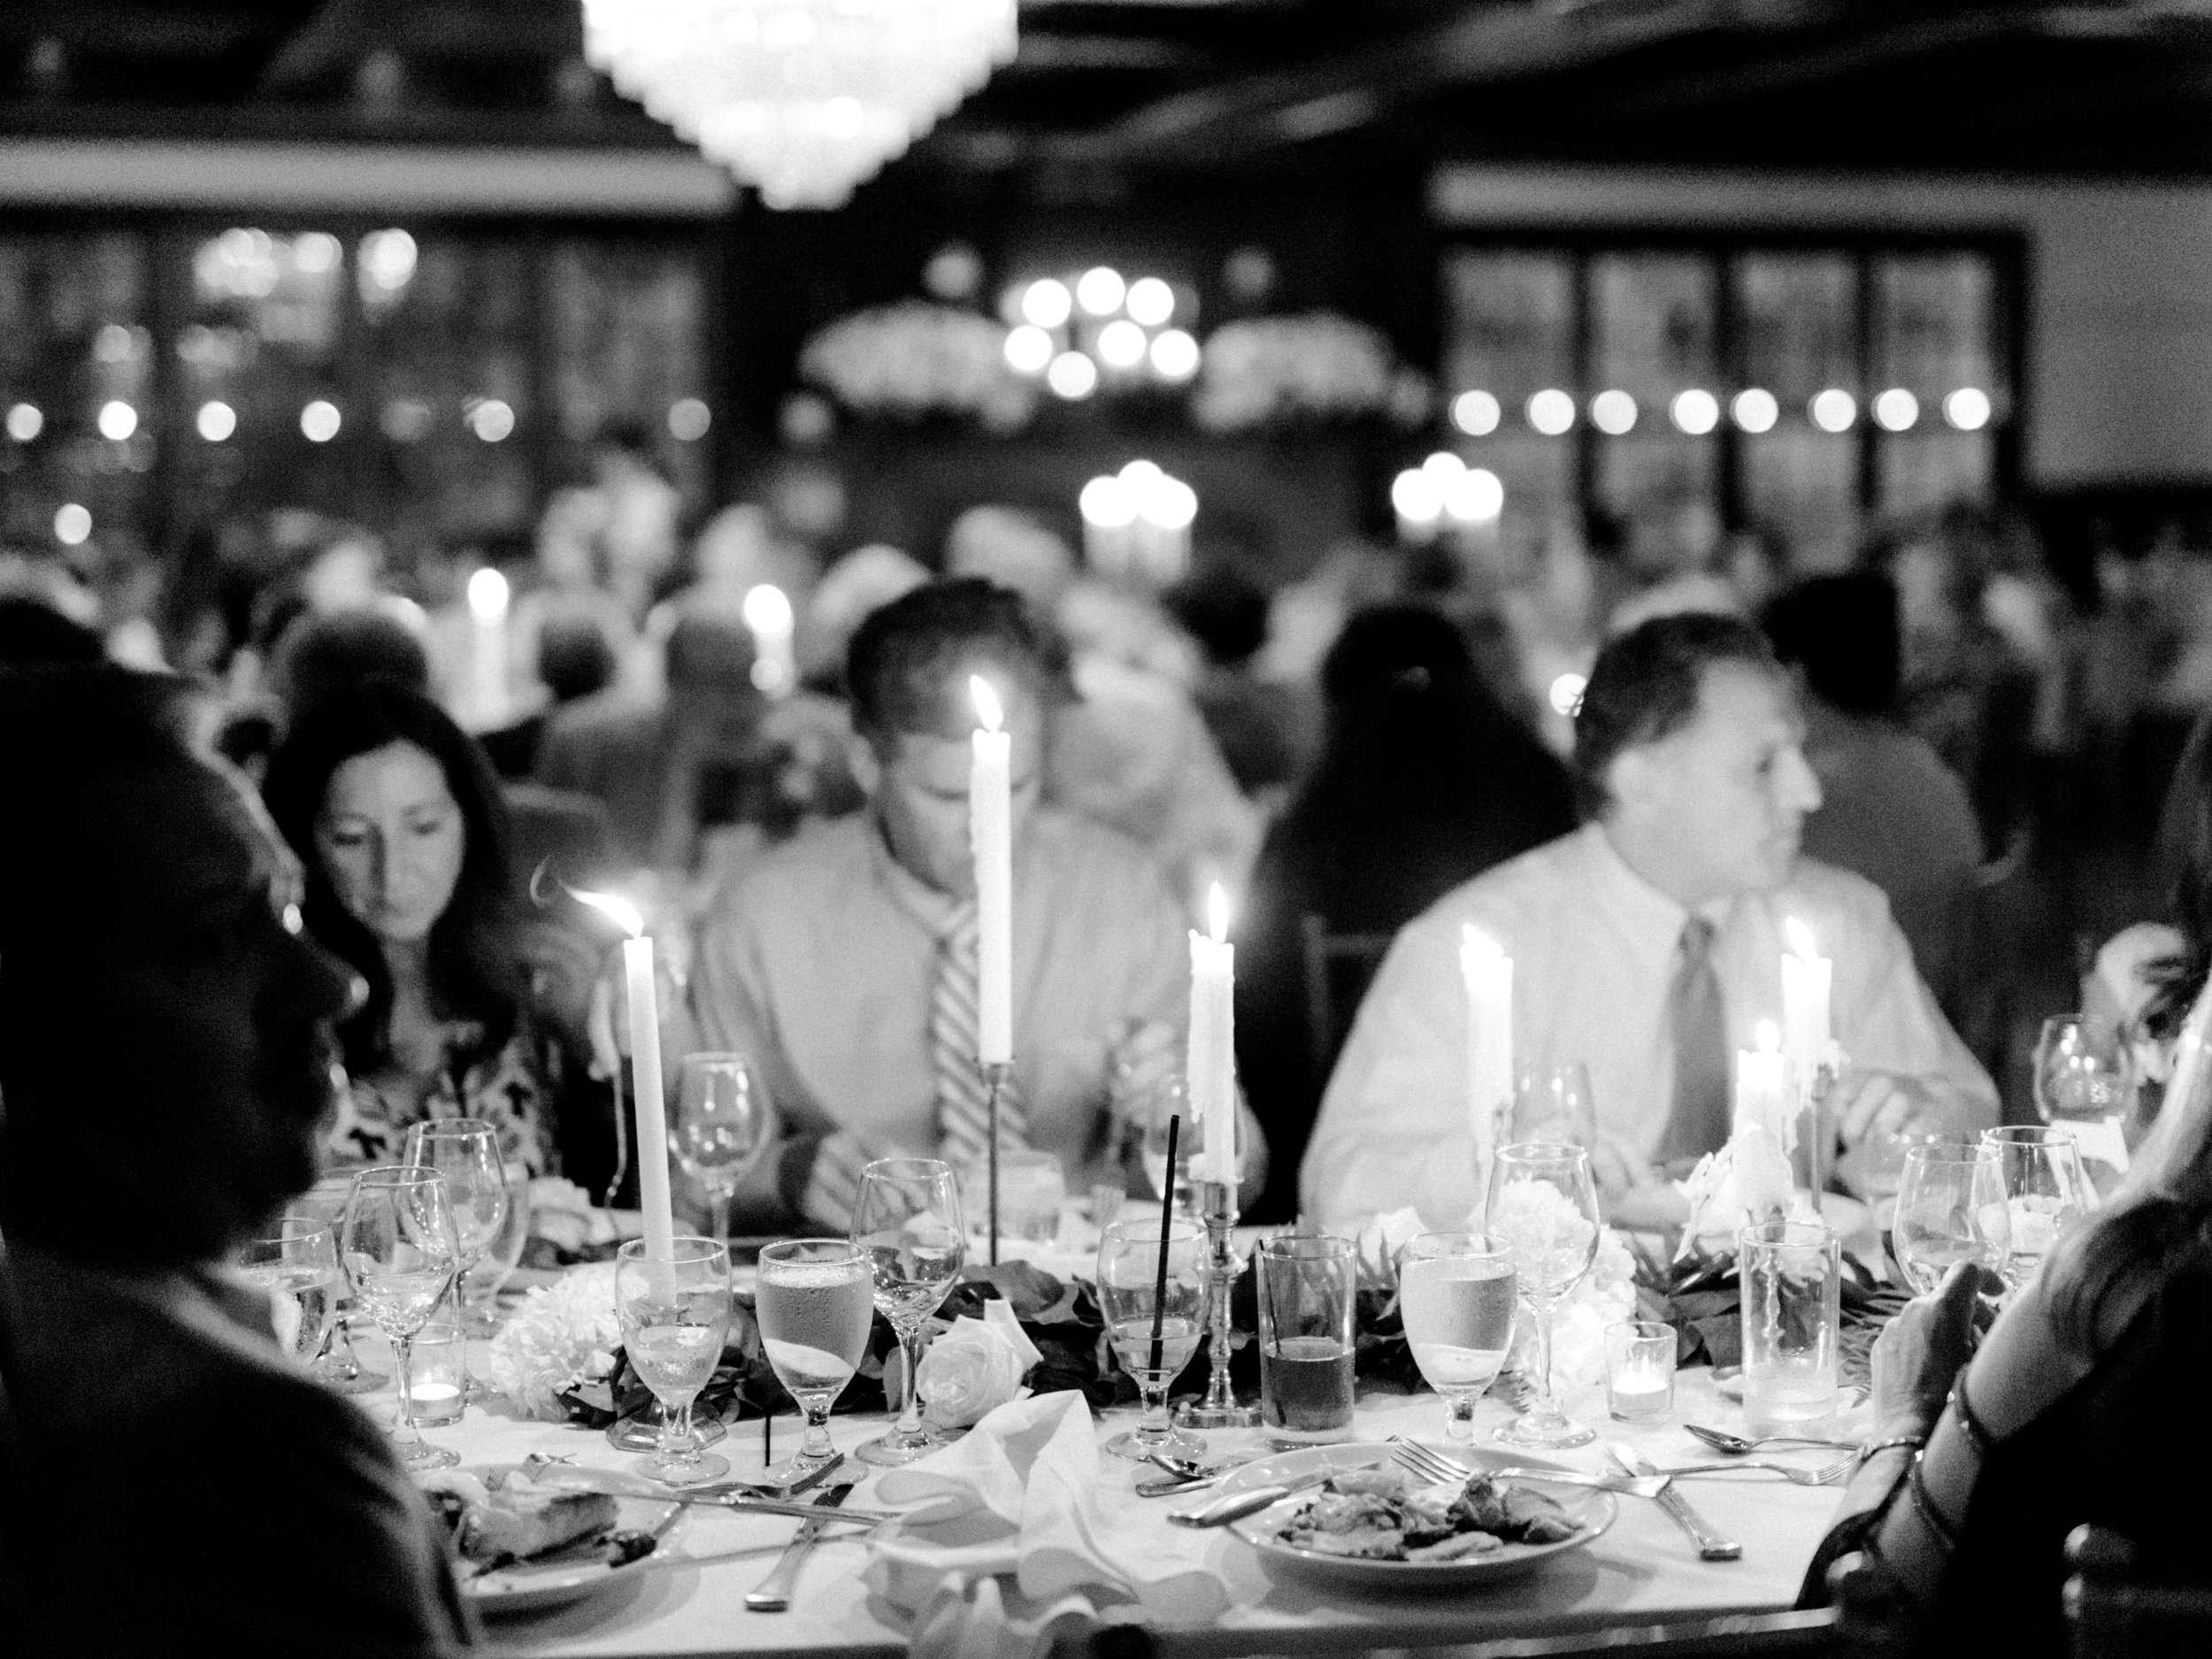 A romantic candlelit reception gives an intimate and romantic feel to this modern summer wedding at Hotel du Village.